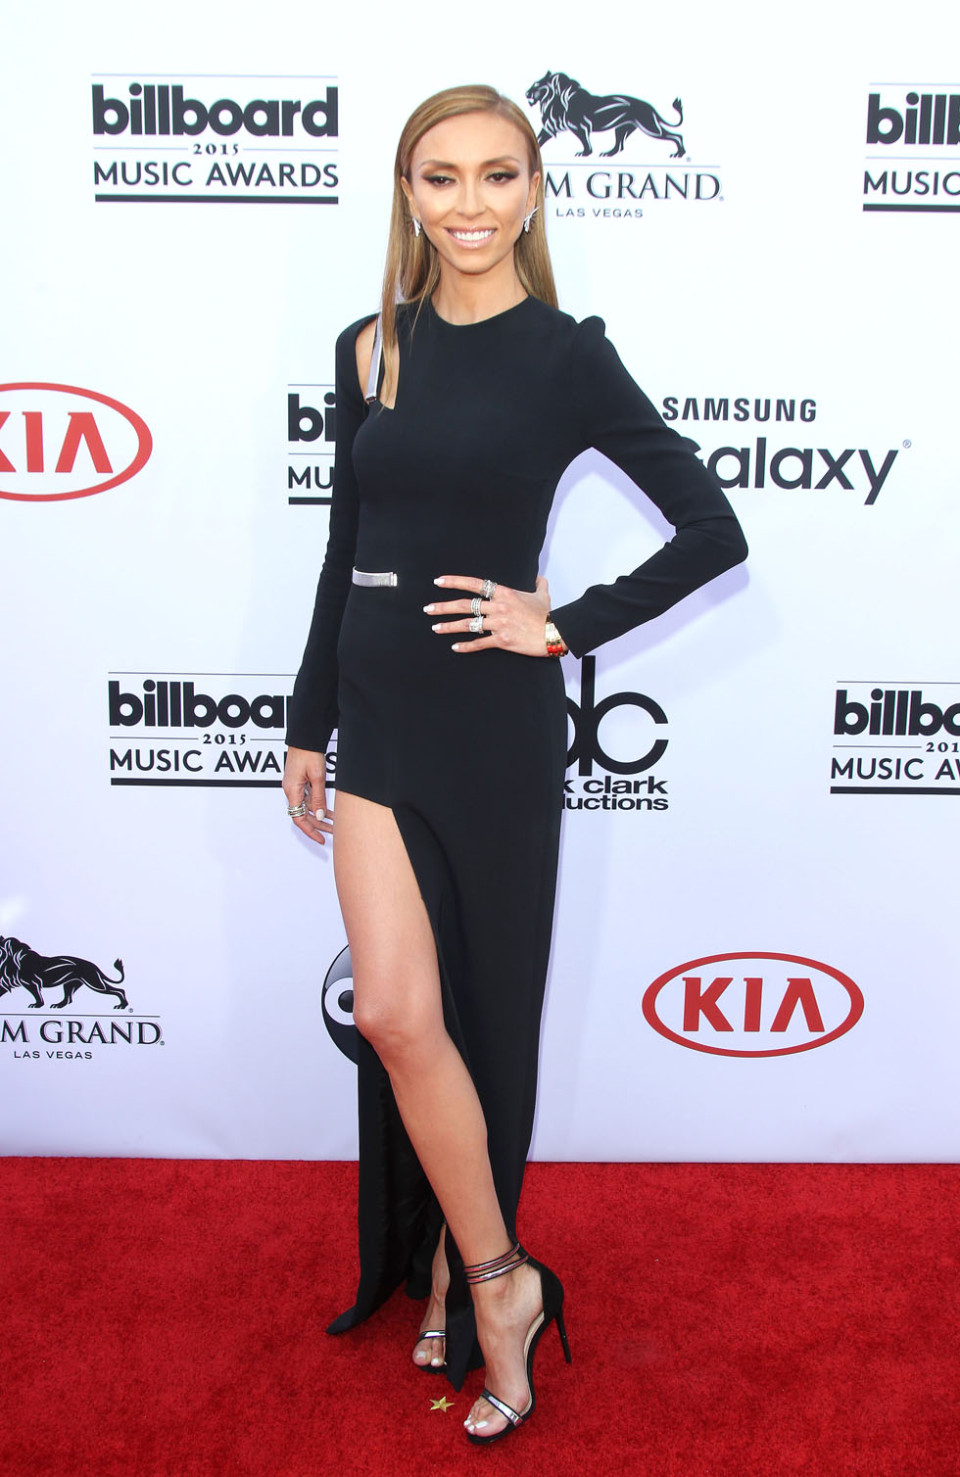 2015 Billboard Music Awards - Arrivals